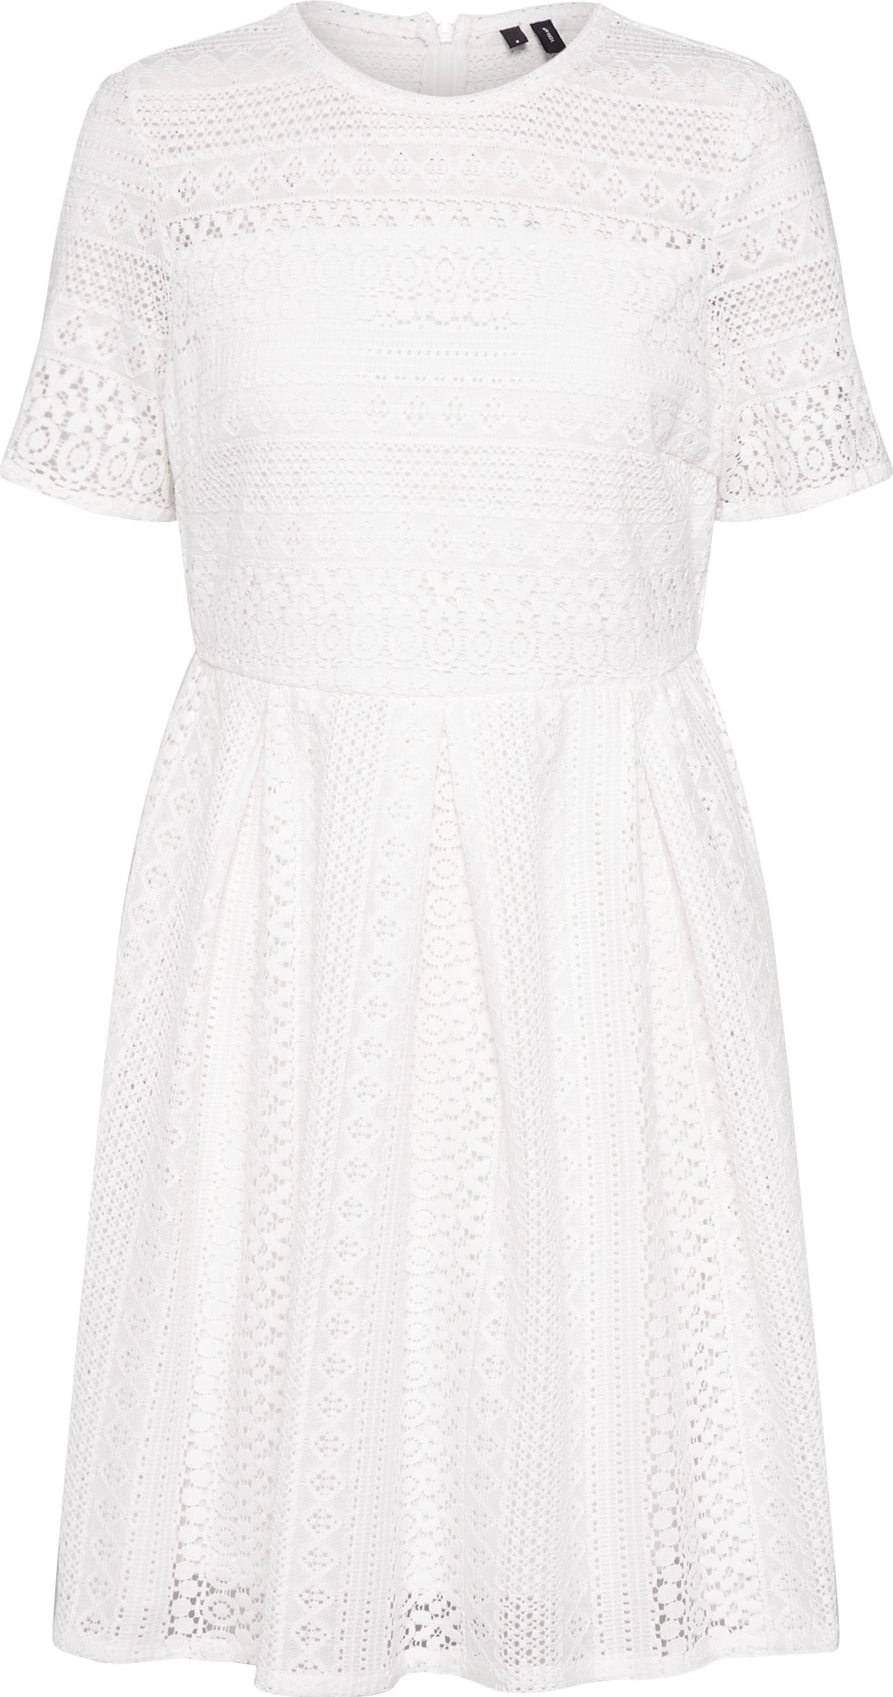 VERO MODA Šaty VMHONEY LACE PLEATED SS DRESS EXP bílá Vero Moda